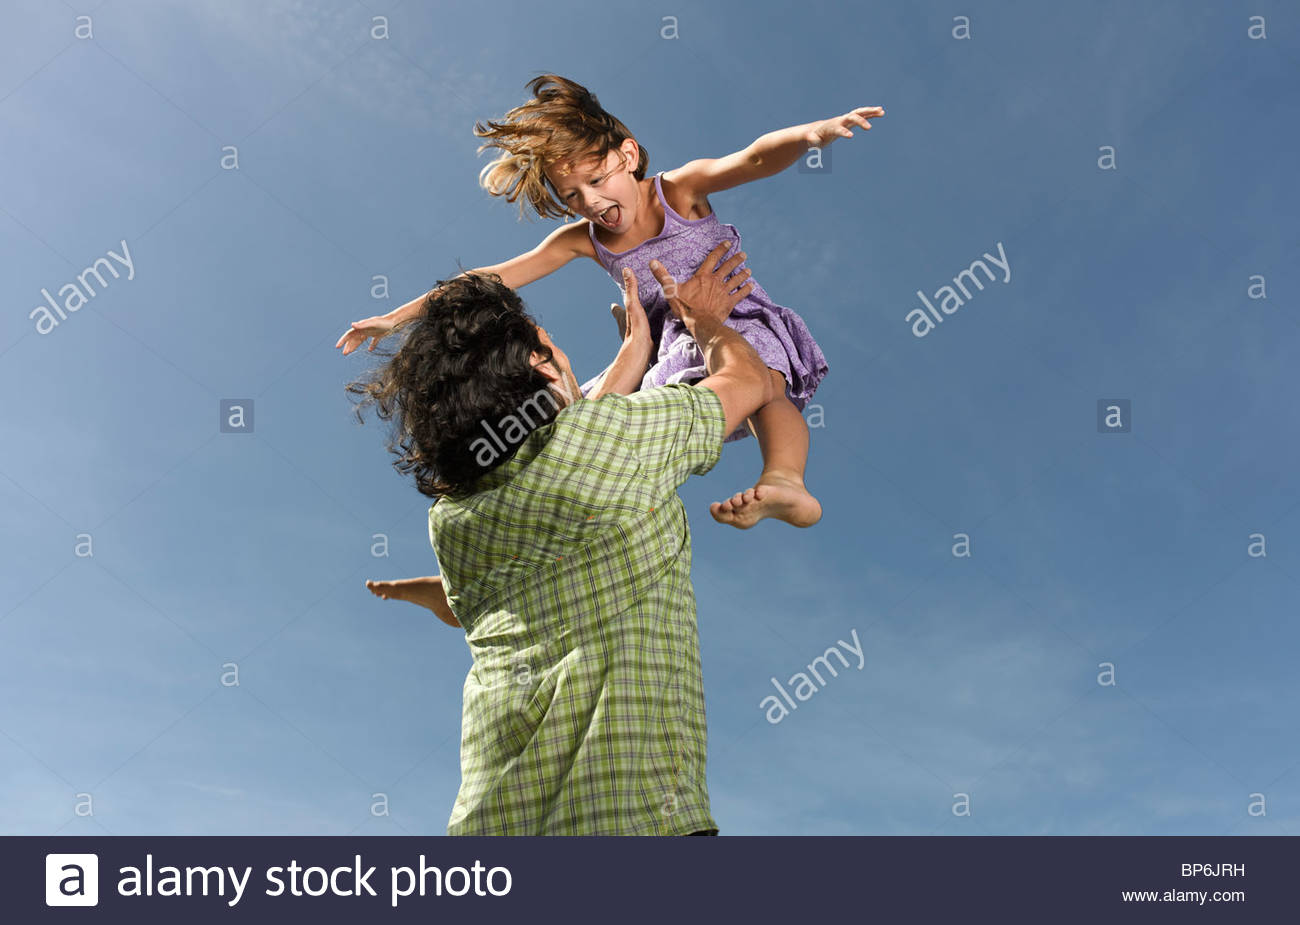 A father throwing his daughter in the air - Stock Image